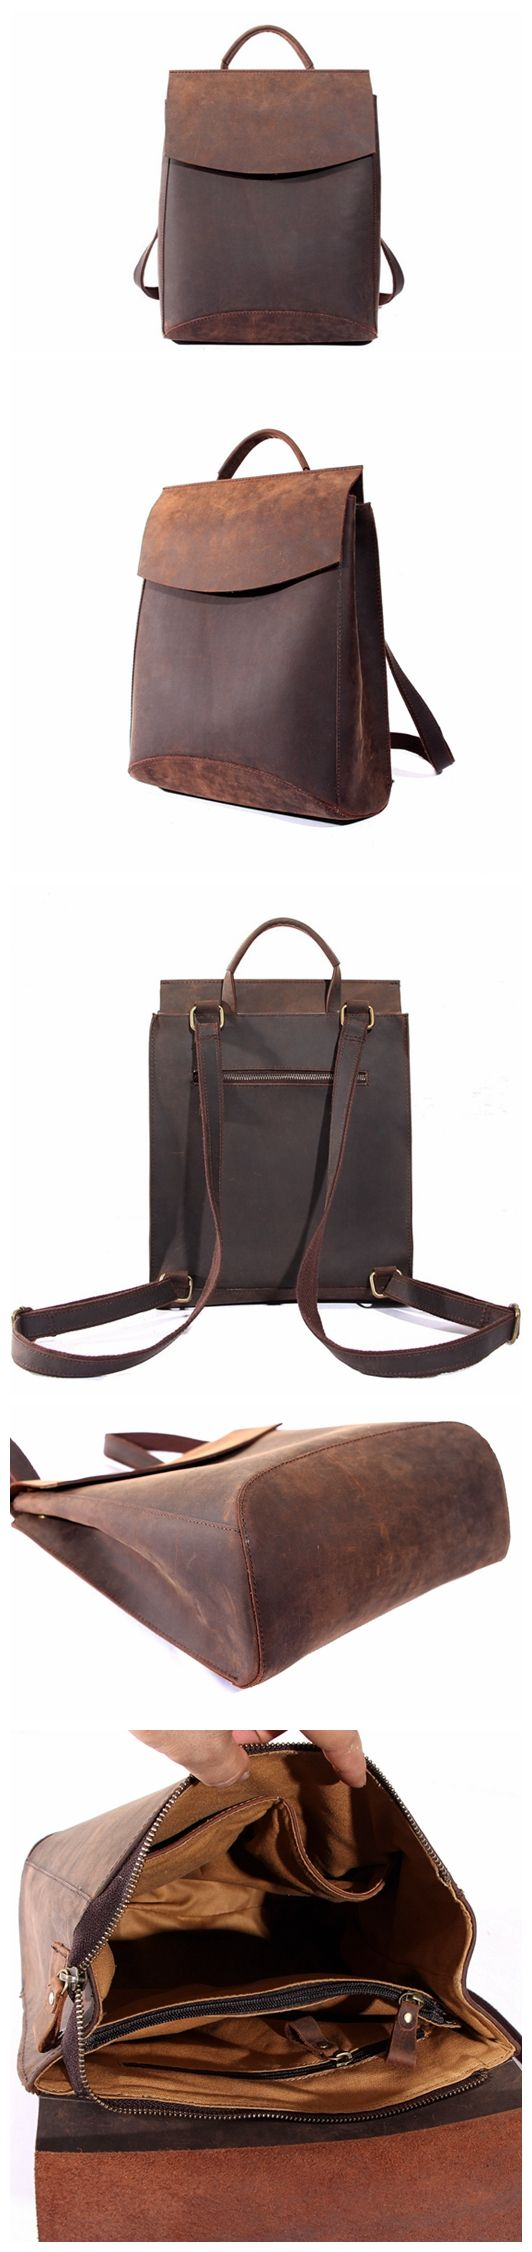 Handcrafted Vintage Style Top Grain Leather Backpack Travel Backpack Unisex Backpack 8904